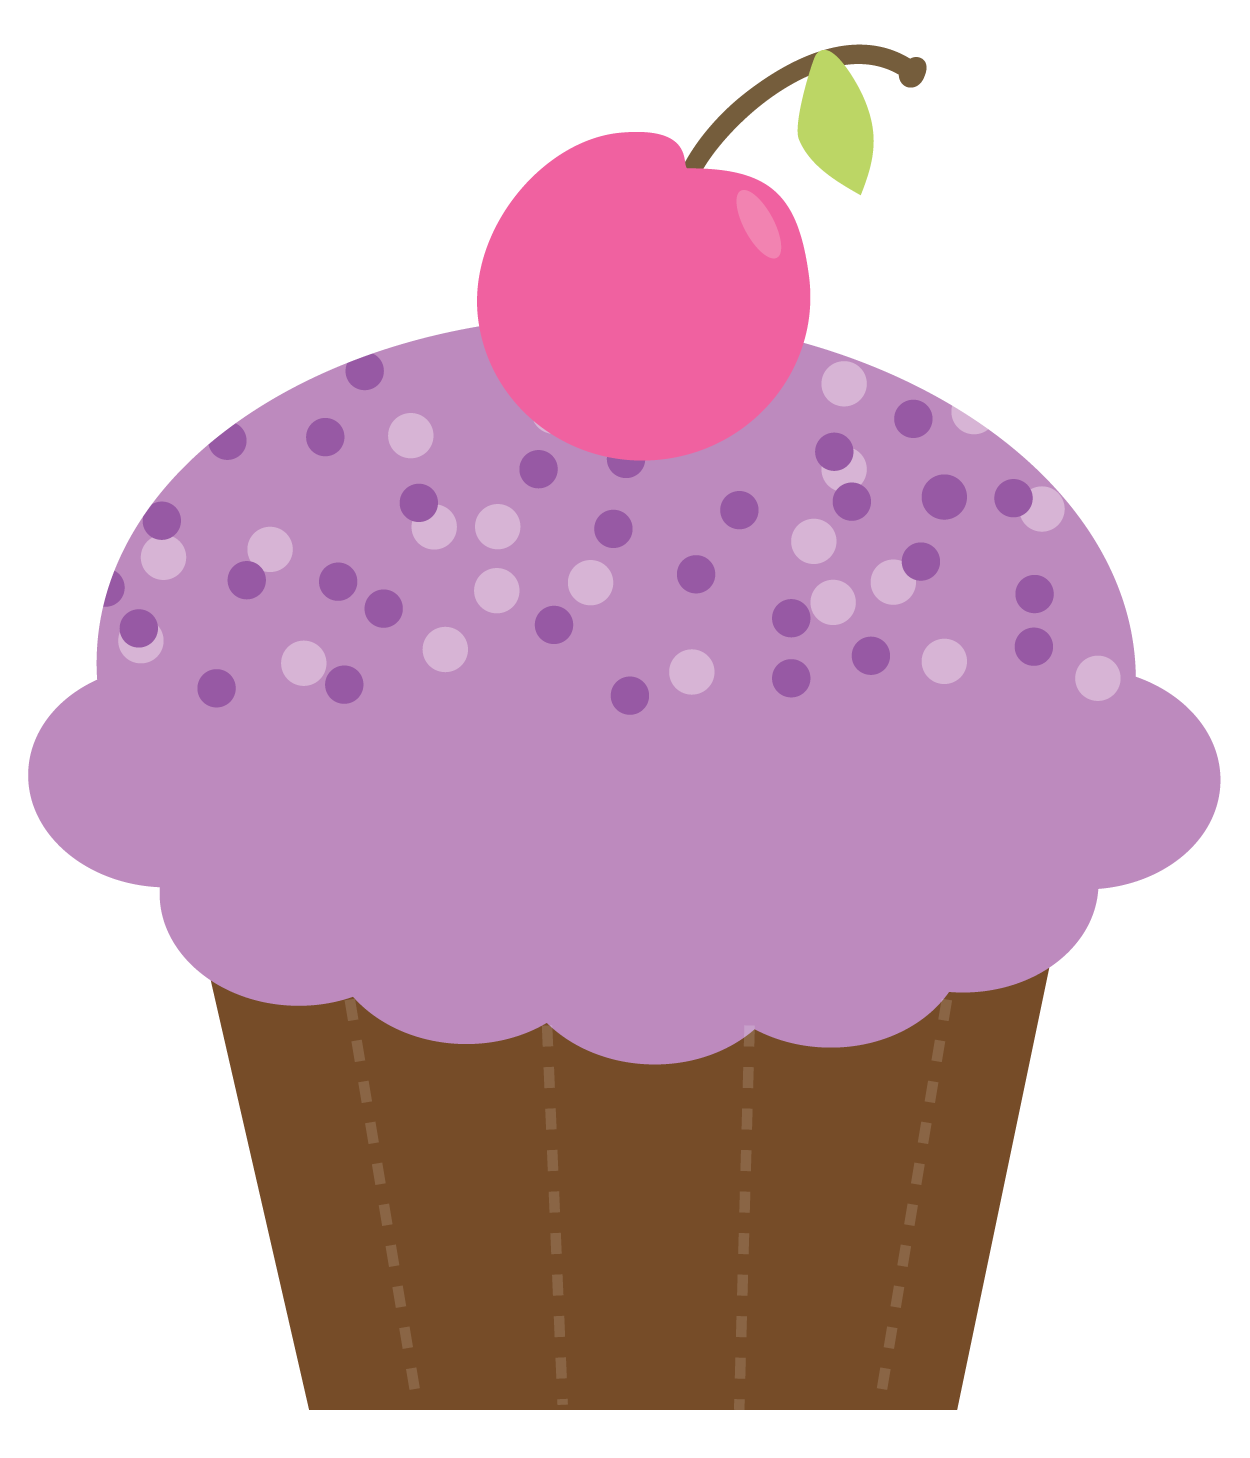 Free Cupcake Clipart : Birthday Cupcake Drawing - ClipArt Best - ClipArt Best